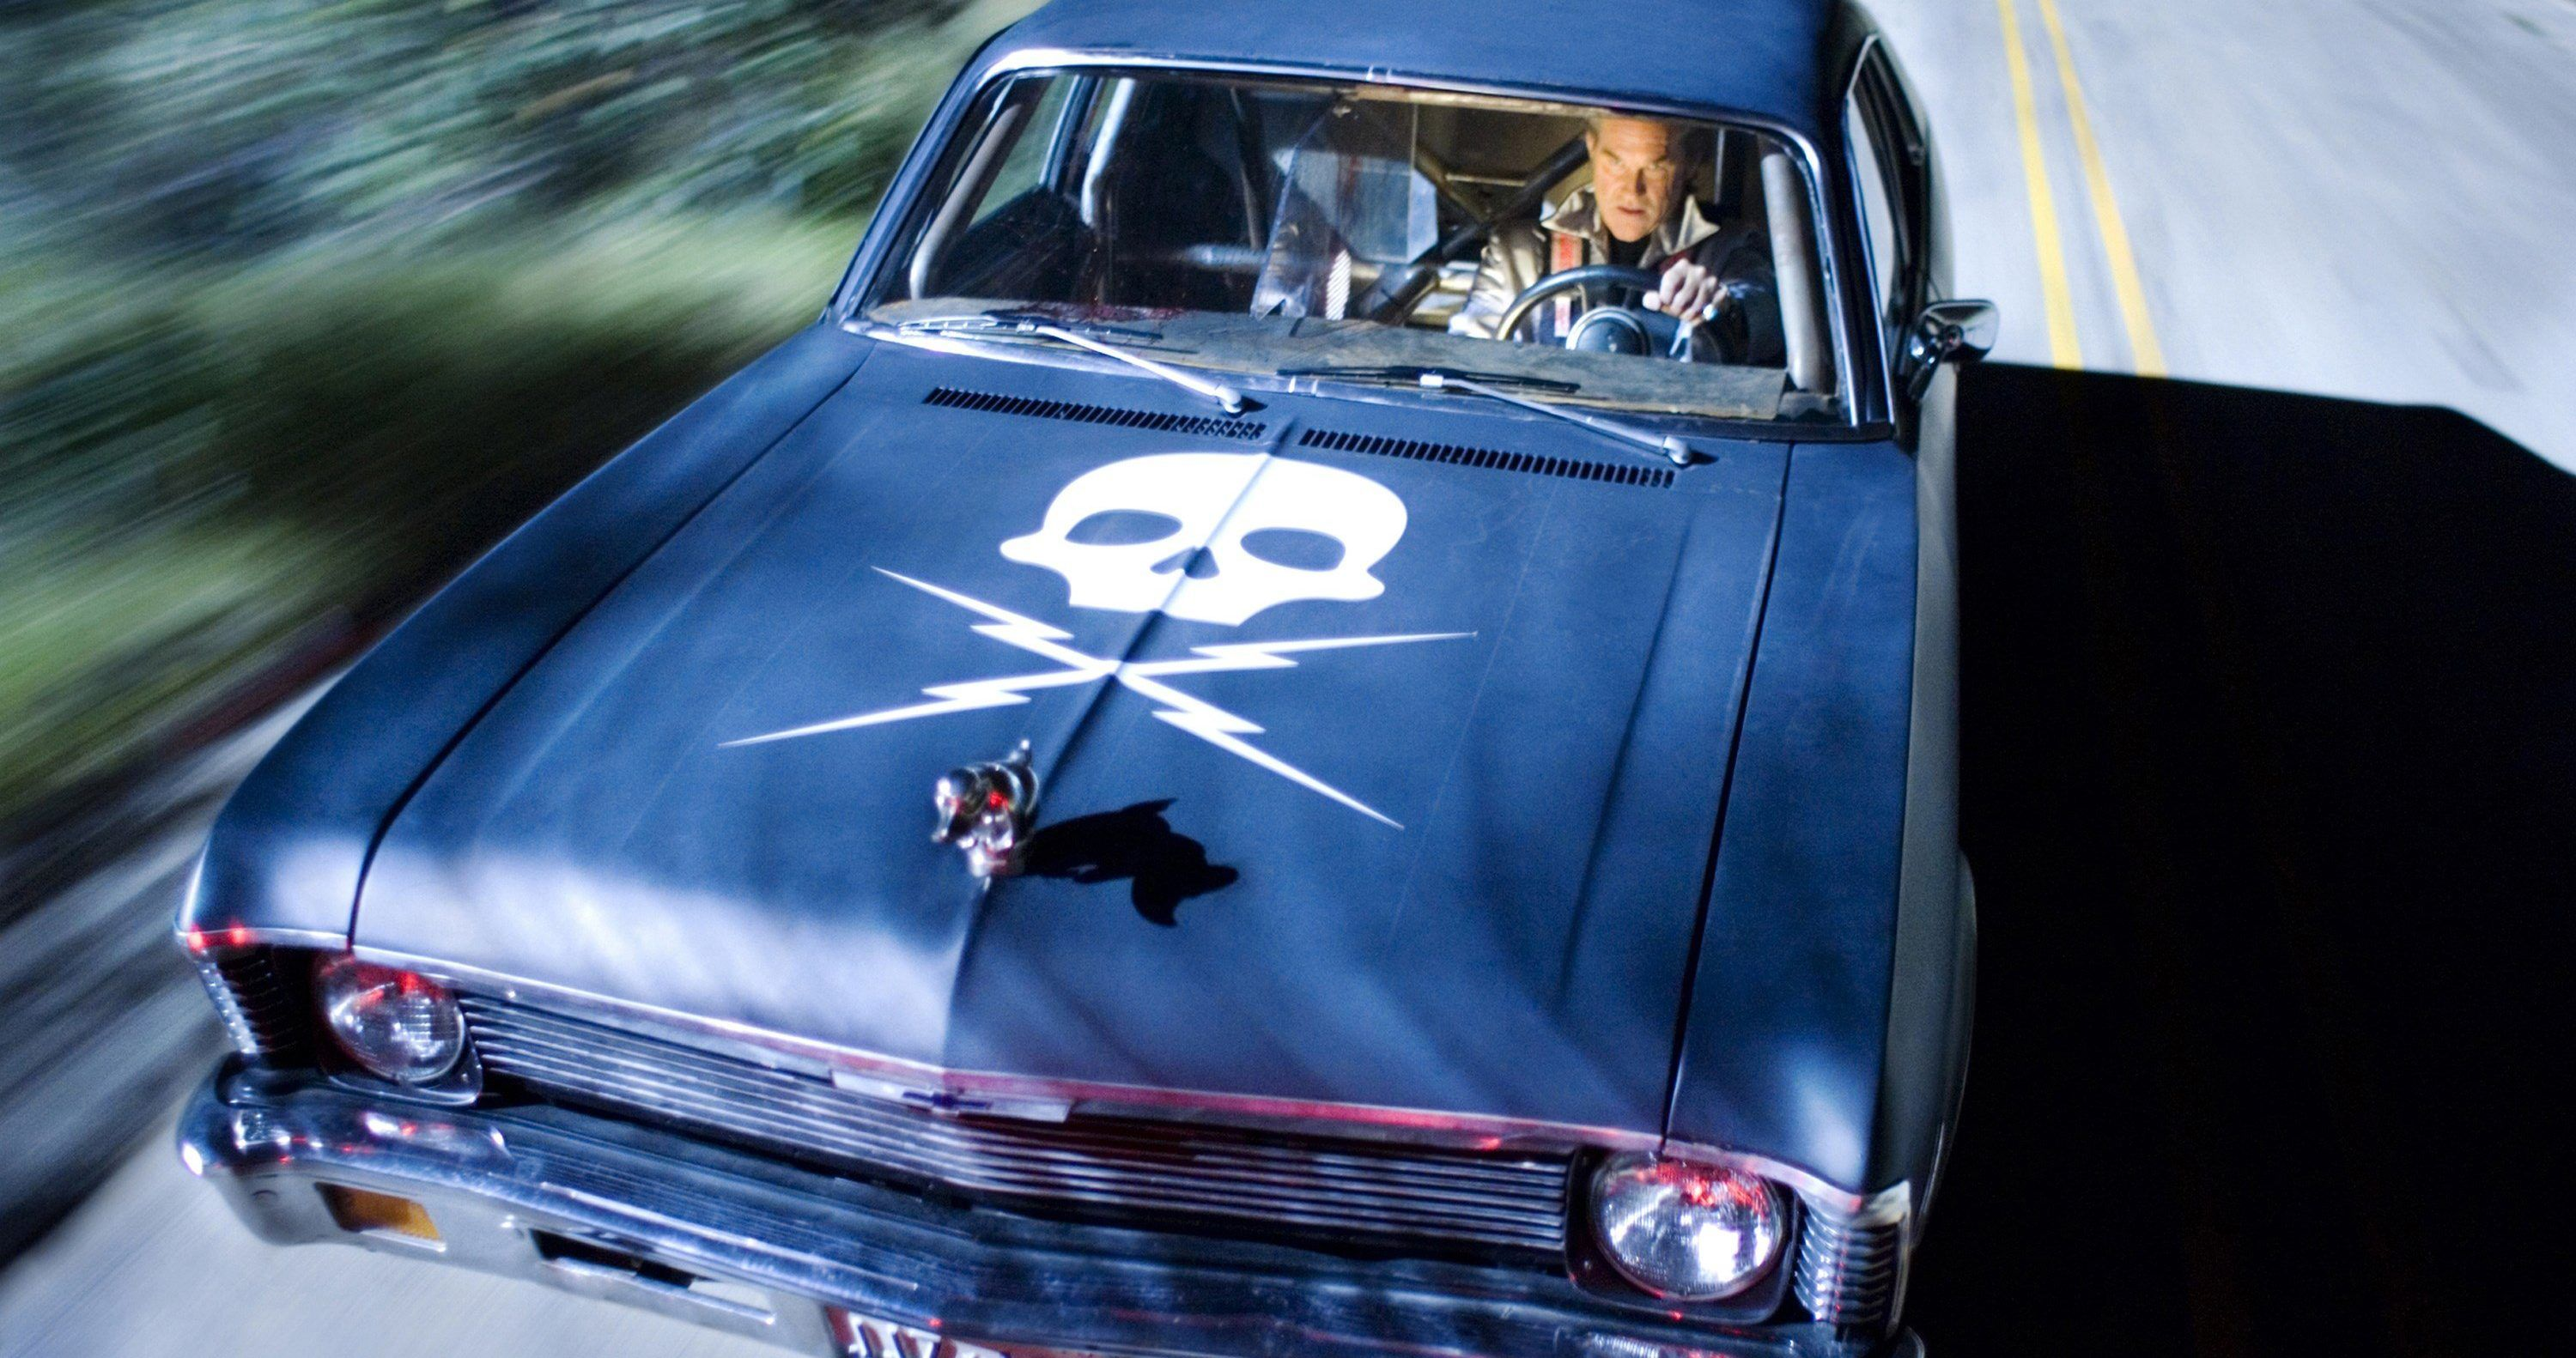 Tarantino's Death Proof: 10 Awesome Facts About The 1970 Chevy Nova